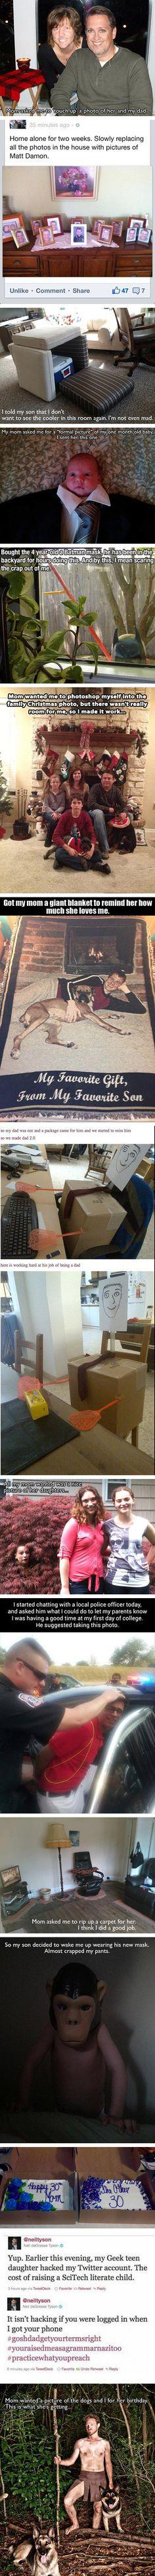 Here are some funny examples of geeky kids thinking outside the box.